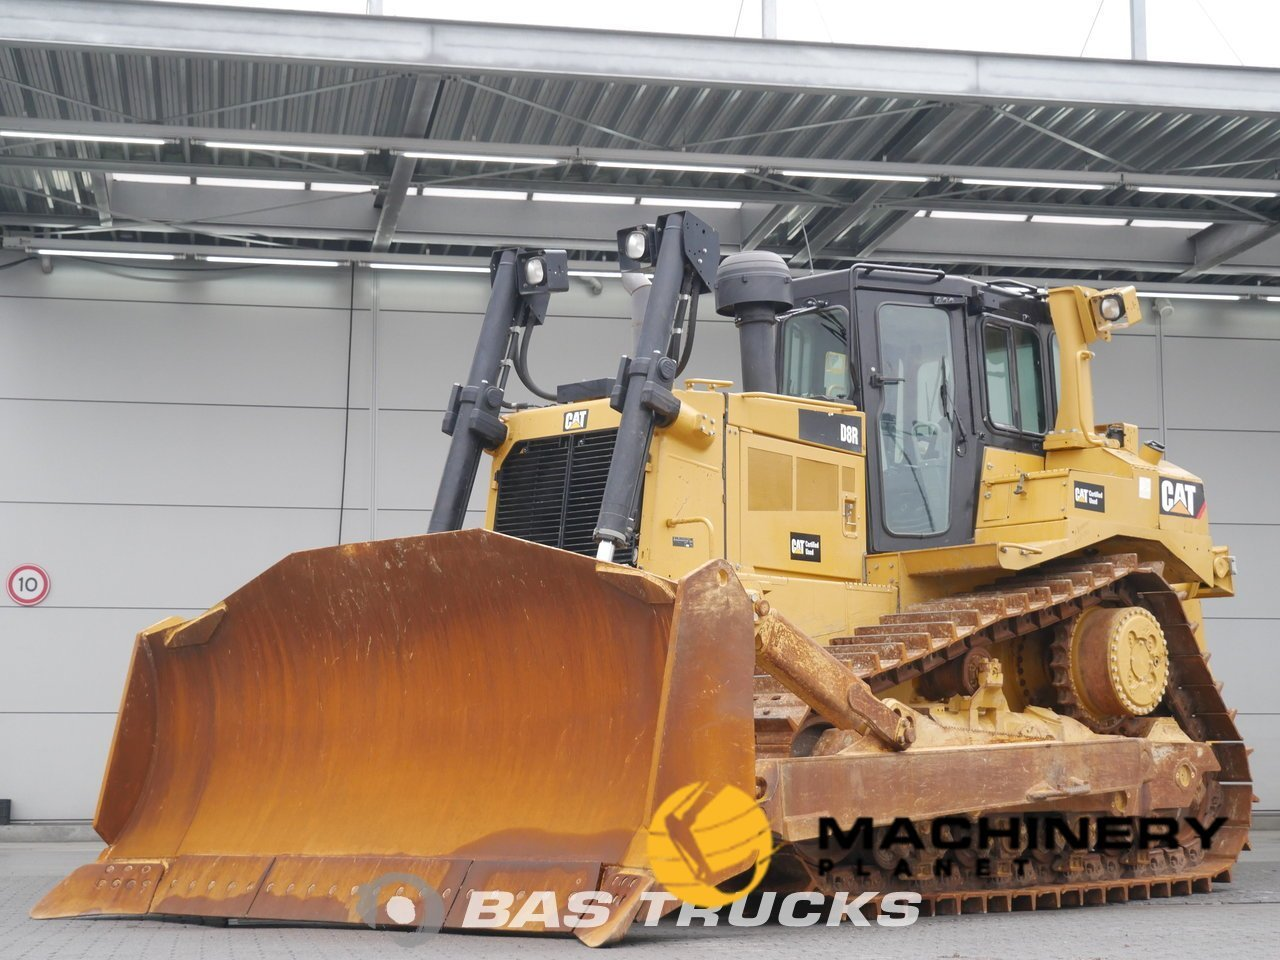 Used-Construction-equipment-Caterpillar-D8R-Track-2014_128121_1-1554203616315_5ca343e04ccca-1.jpg